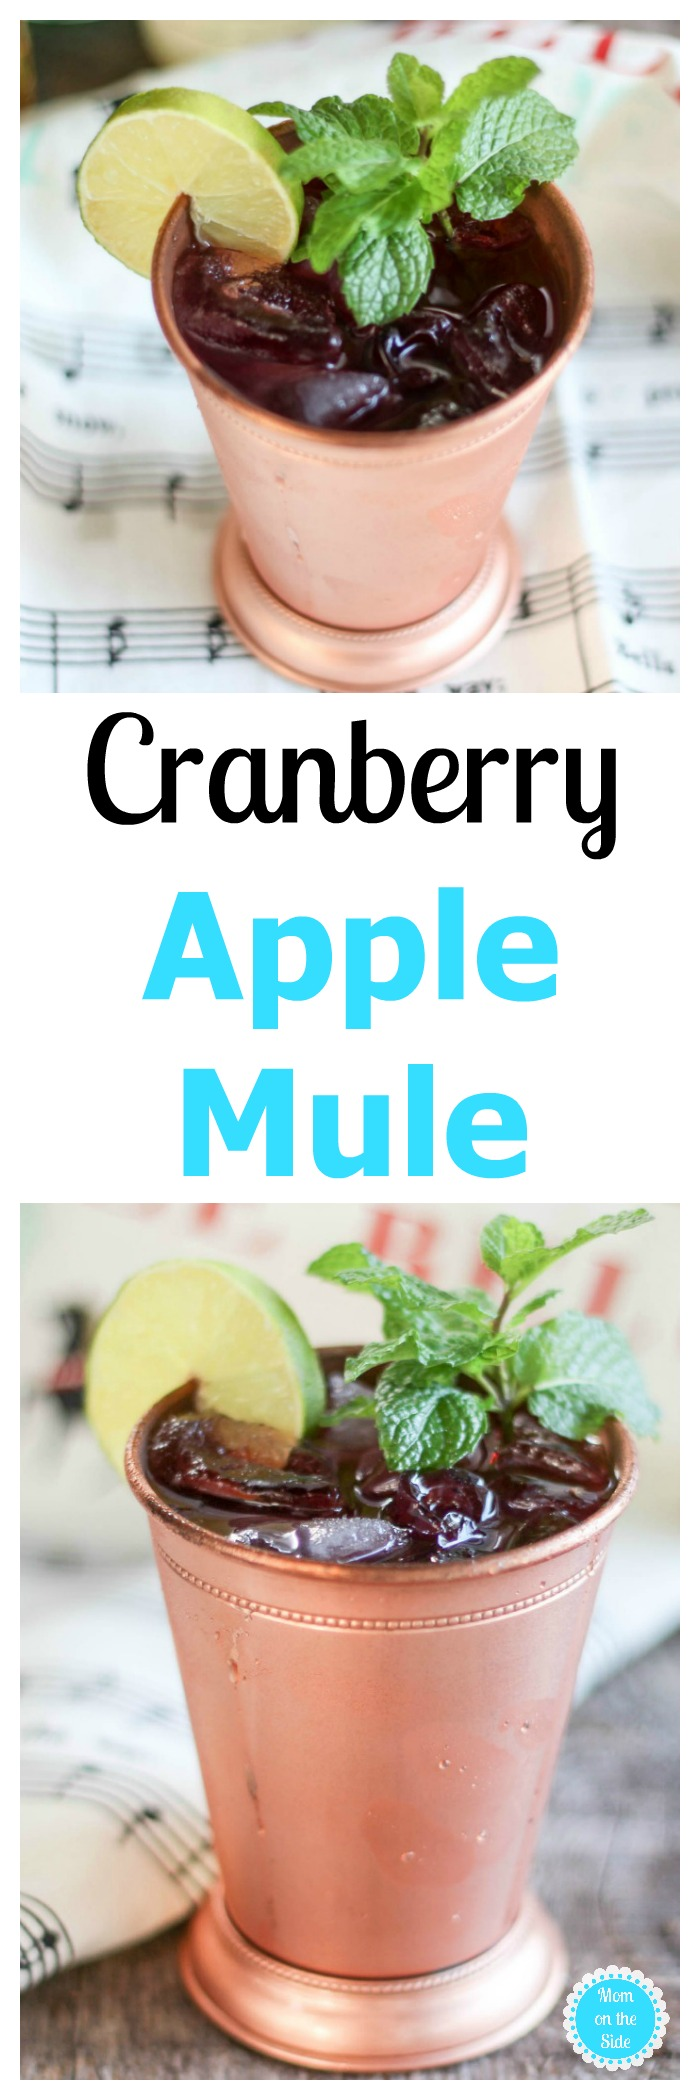 Moscow Mule with delicious fall twist! Cranberry Apple Mule is great for sipping on the porch swing & serving at holiday parties. Recipe on Mom on the Side